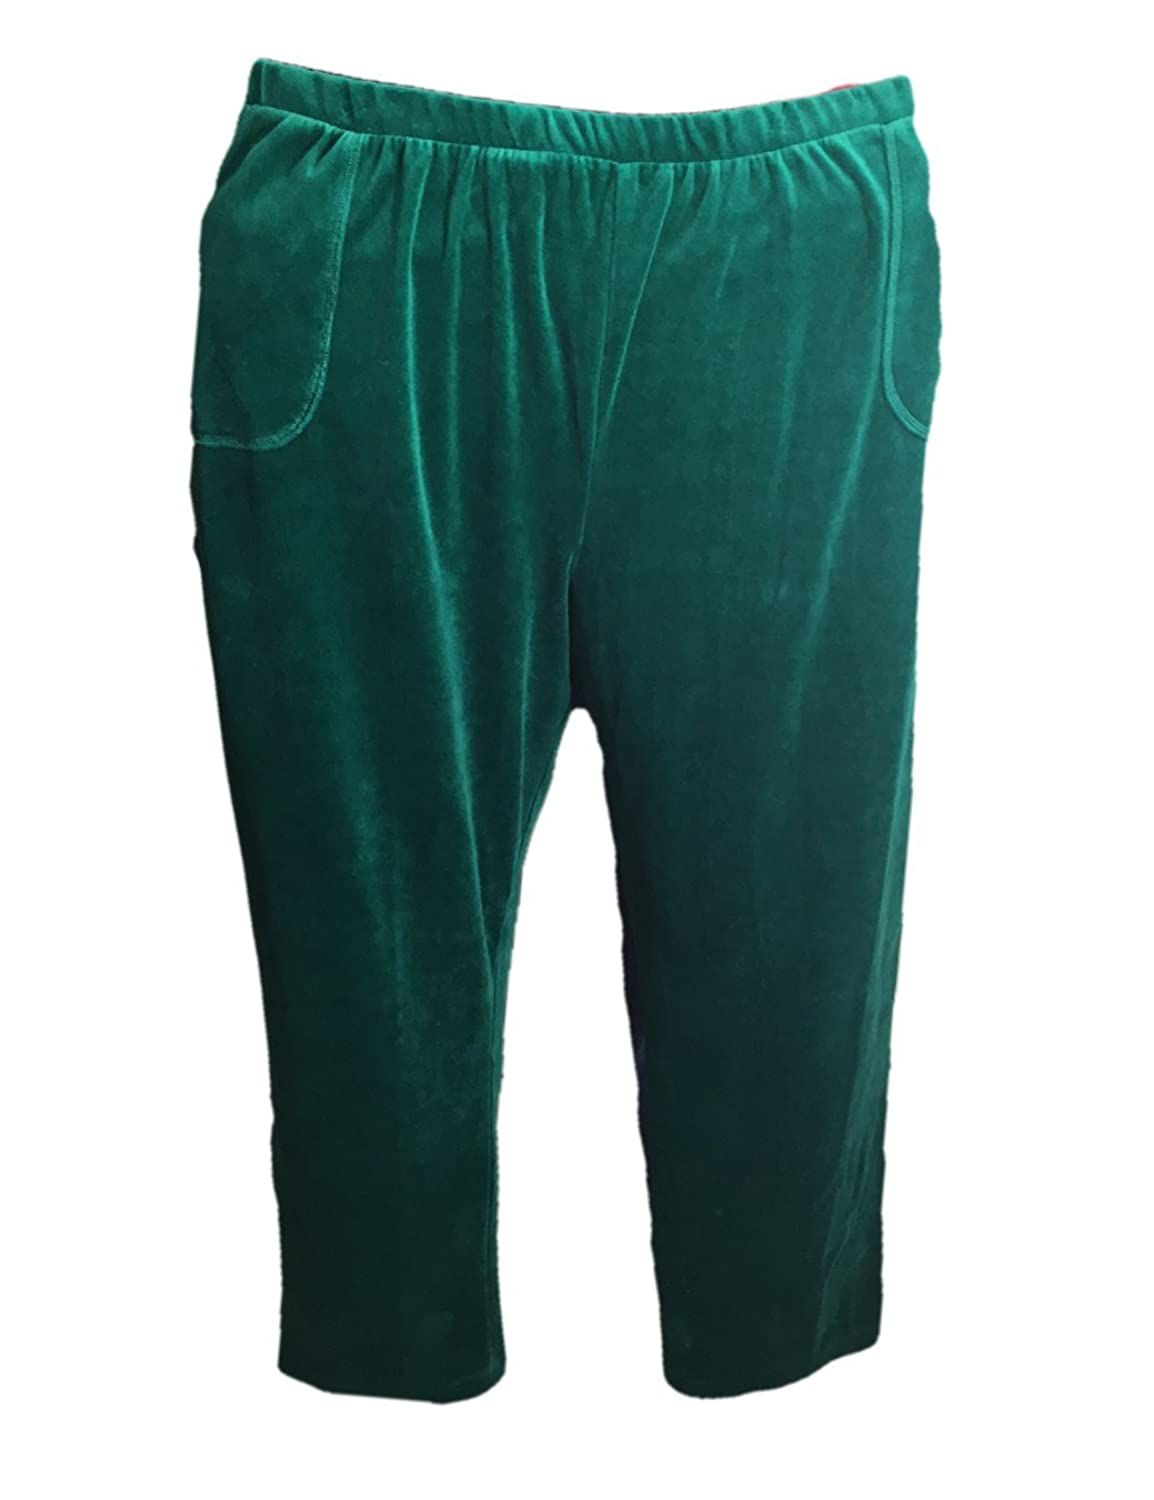 Women's Green Velour Pants with Side Patch Pockets